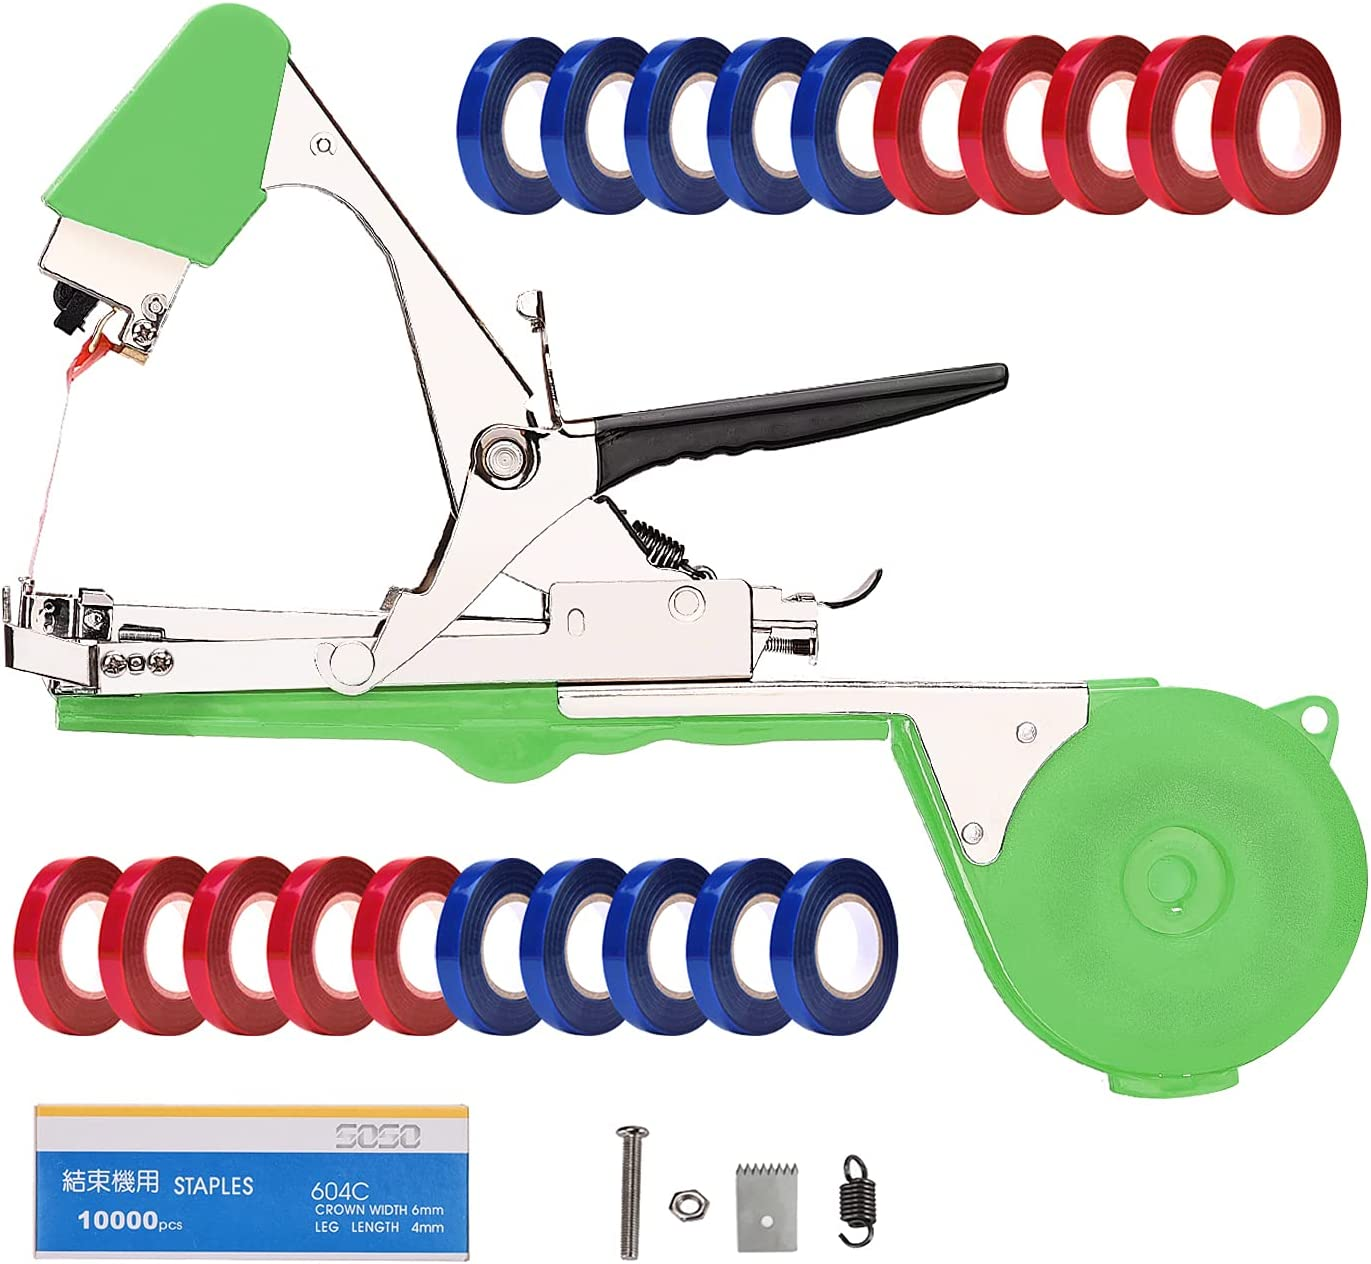 DrRobor Plant Tying Machine Tomato Tape Tool Tapener Fruit Twine Tool with 21 Rolls of Tape and 1 Box of Staple for Garden Vegetable Grape Cucumber Pepper